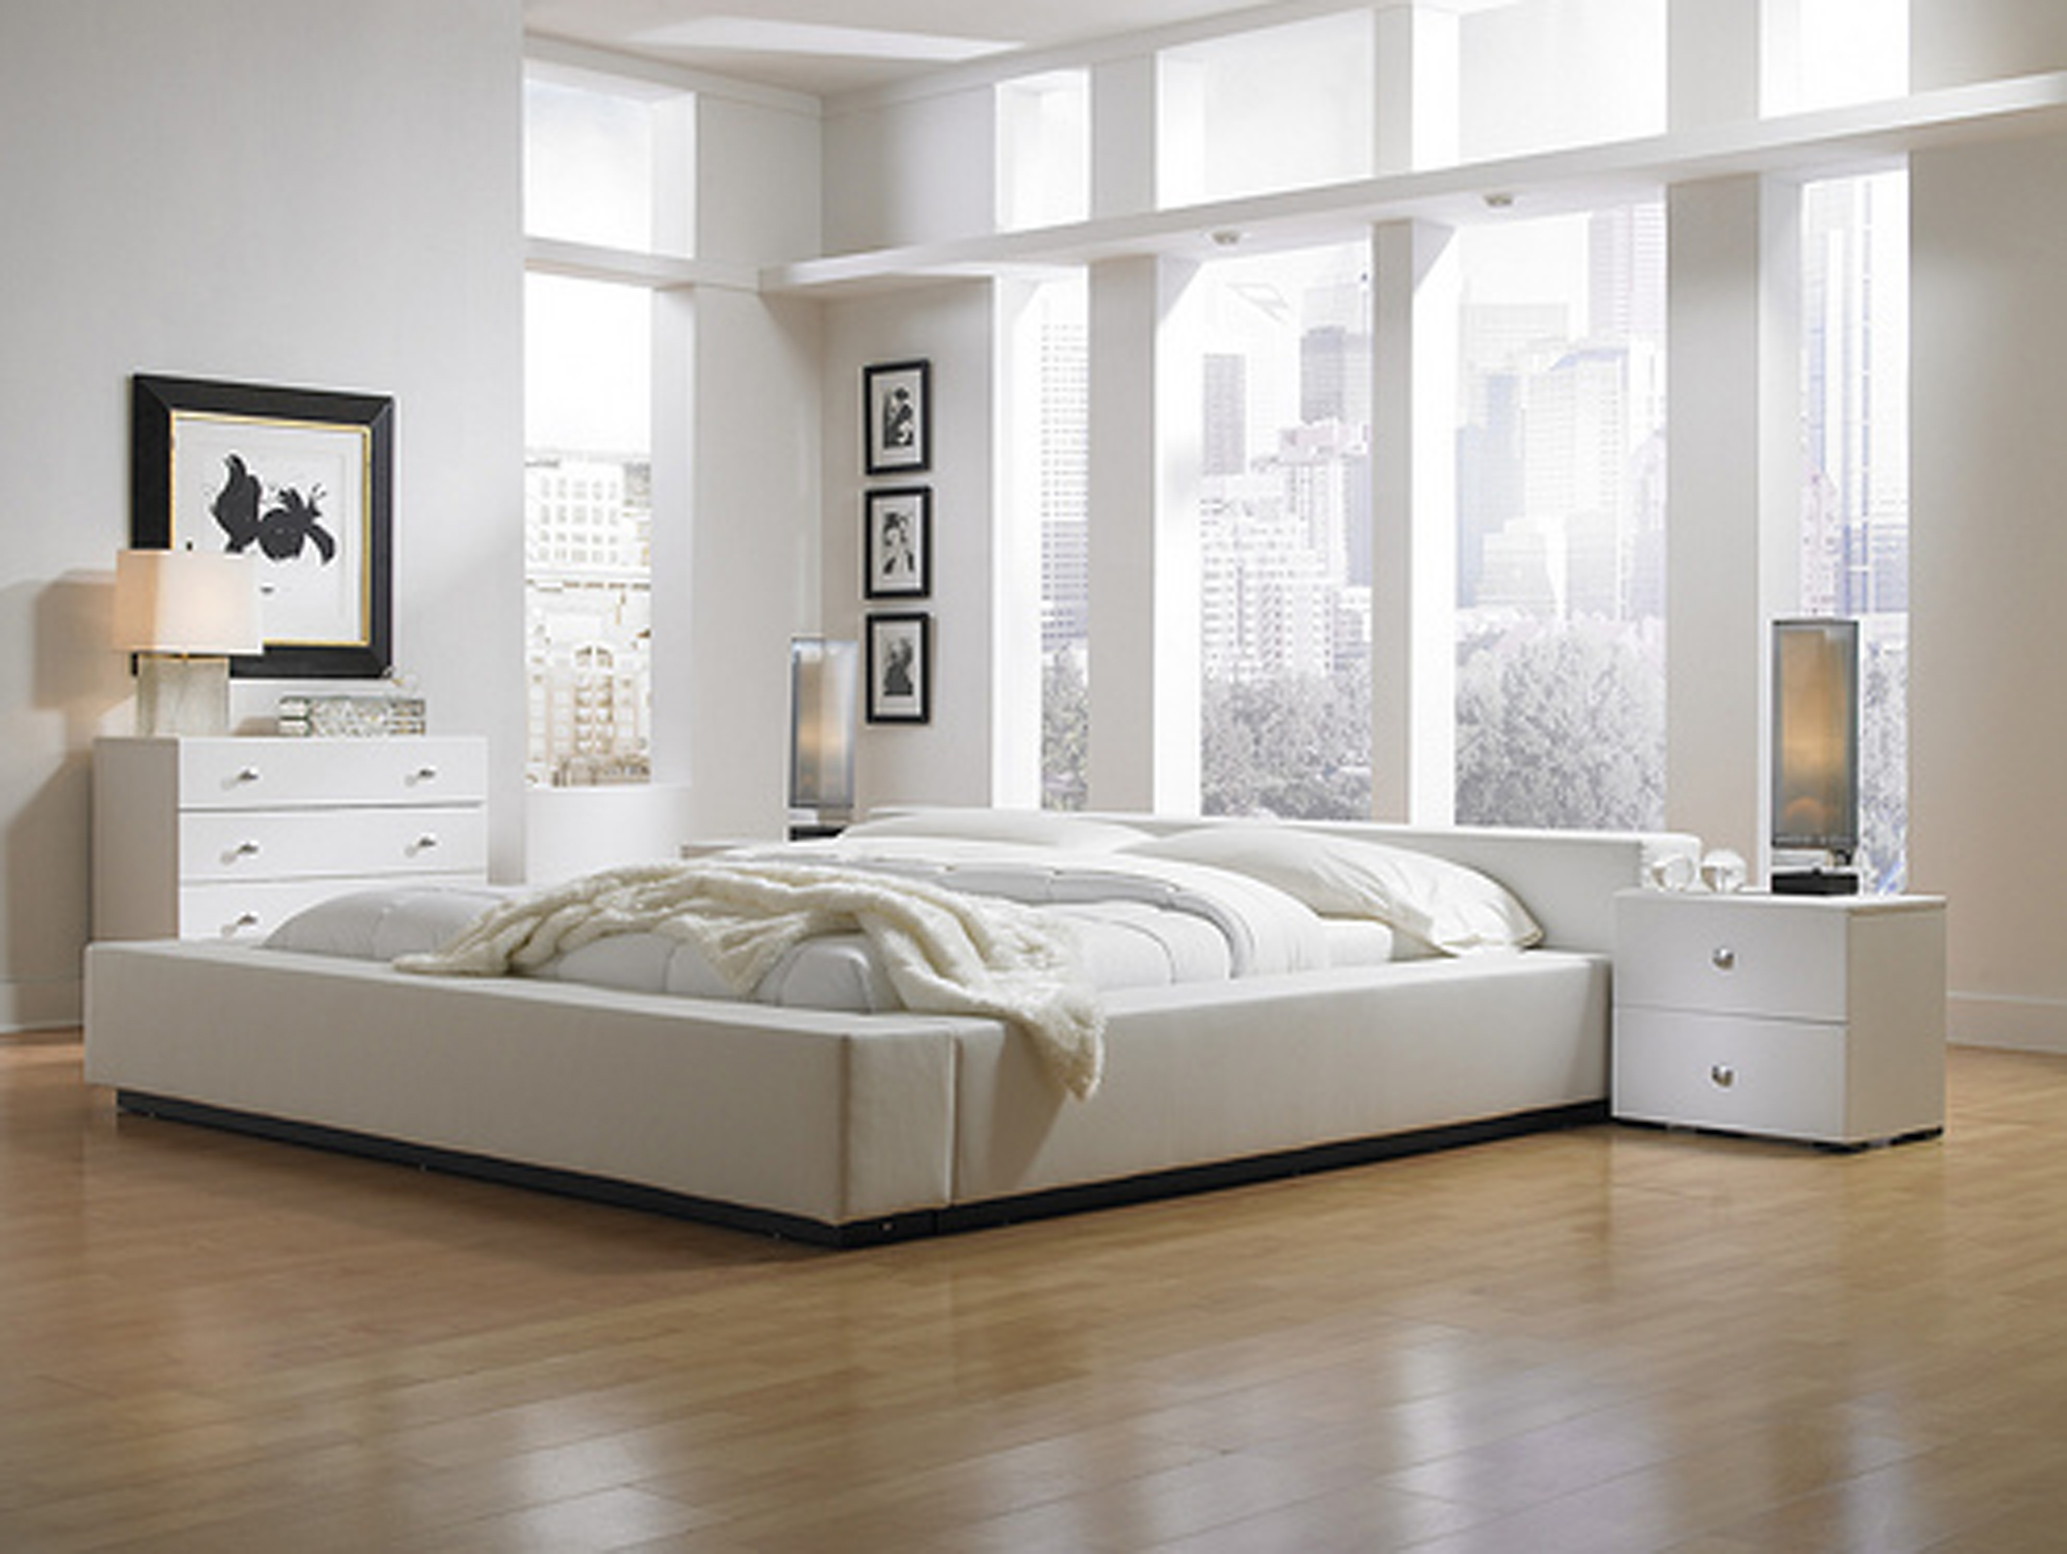 room ideas with white furniture photo - 2